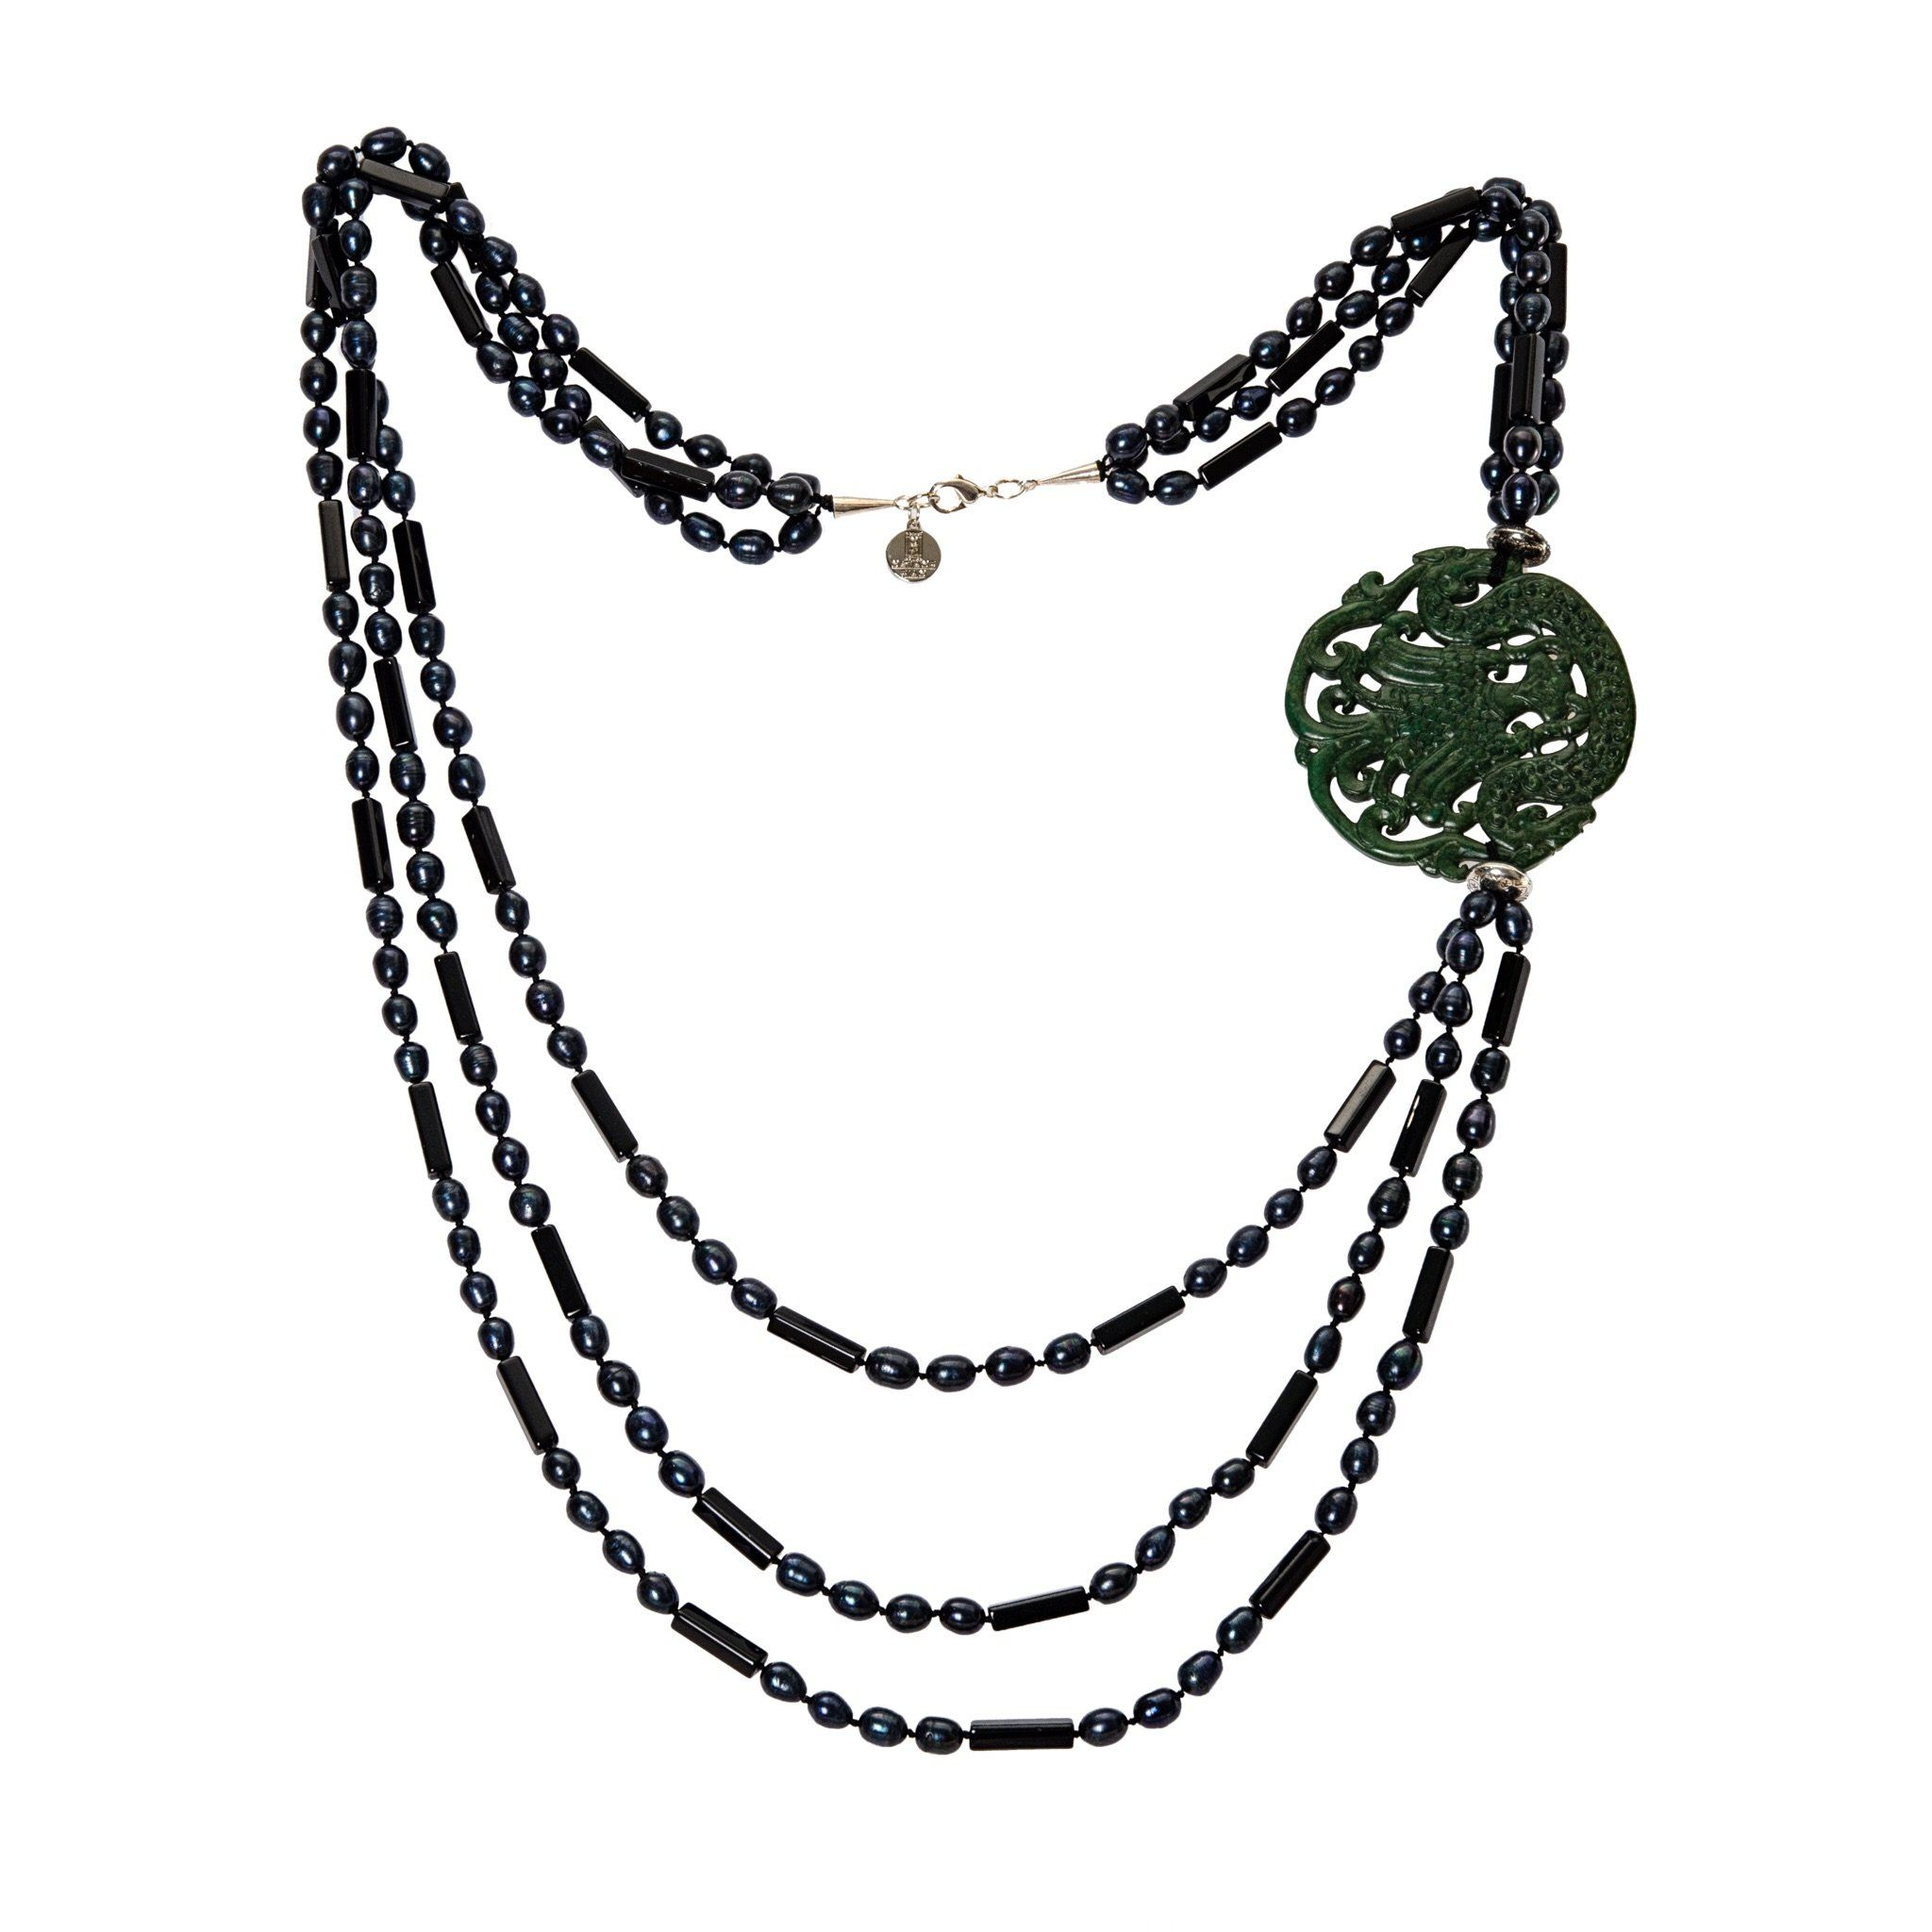 MEKONG grey pearls necklace